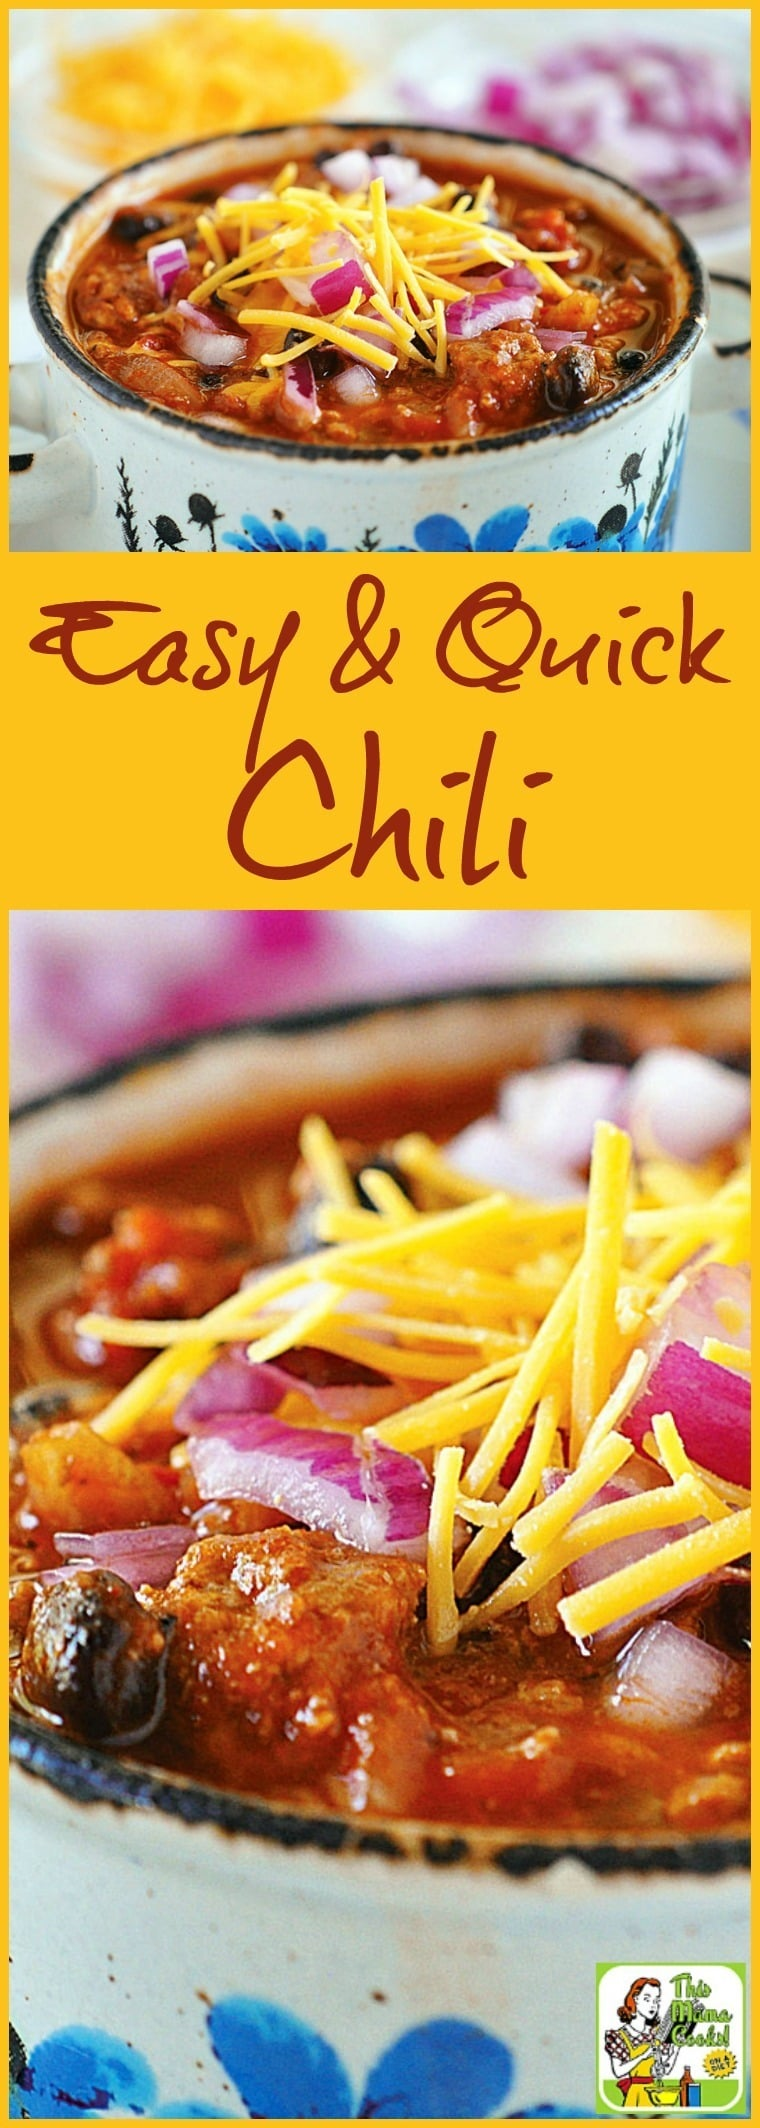 Easy & Quick Chili